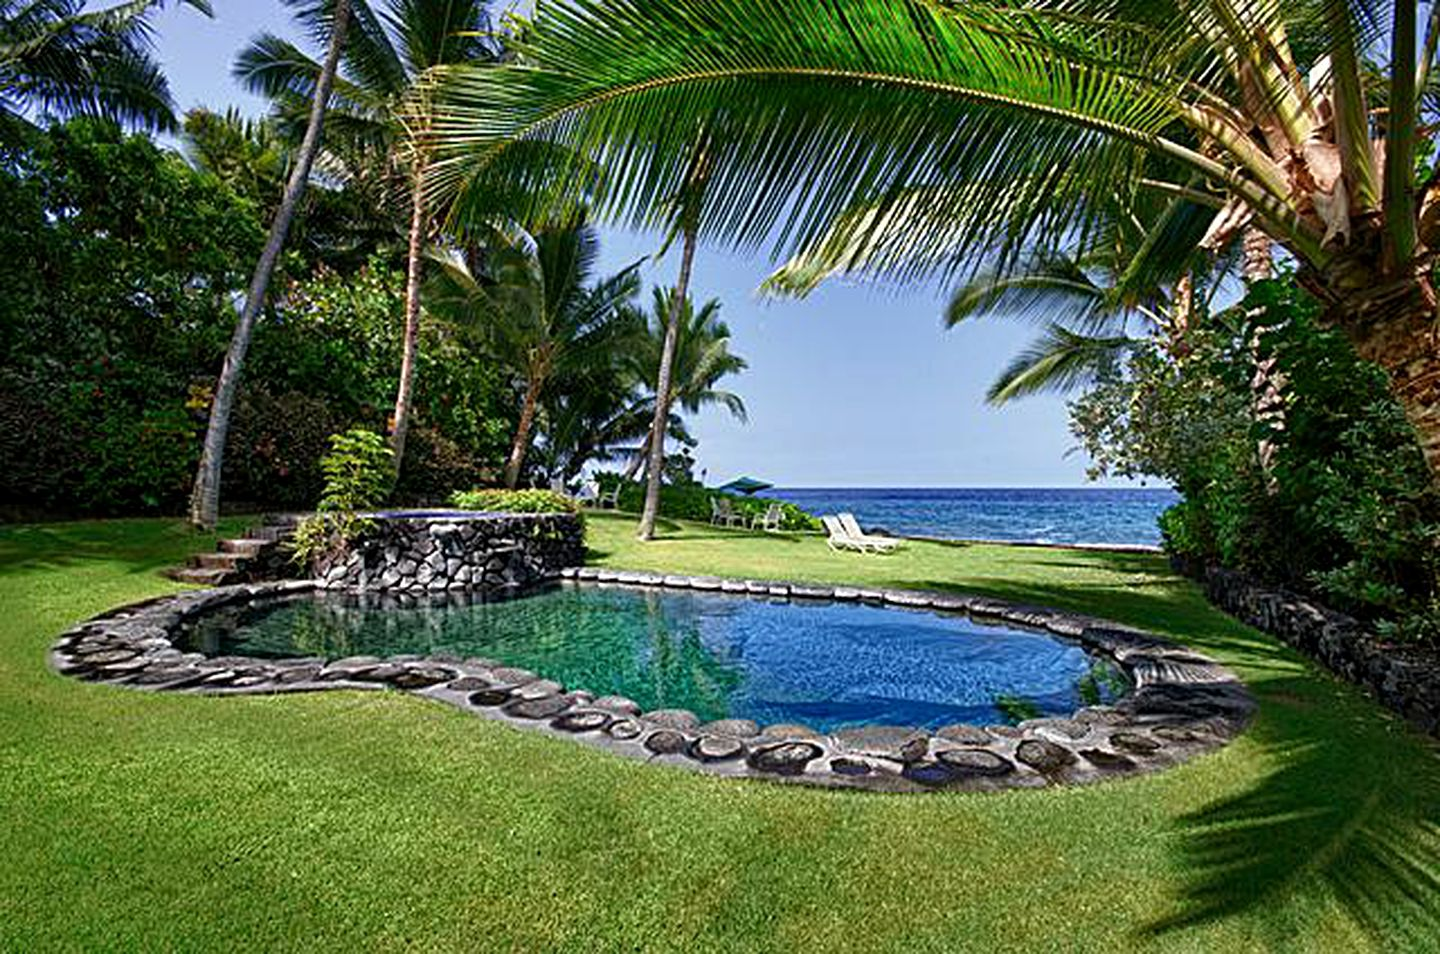 Cottages (Kailua-Kona, Hawaii, United States)